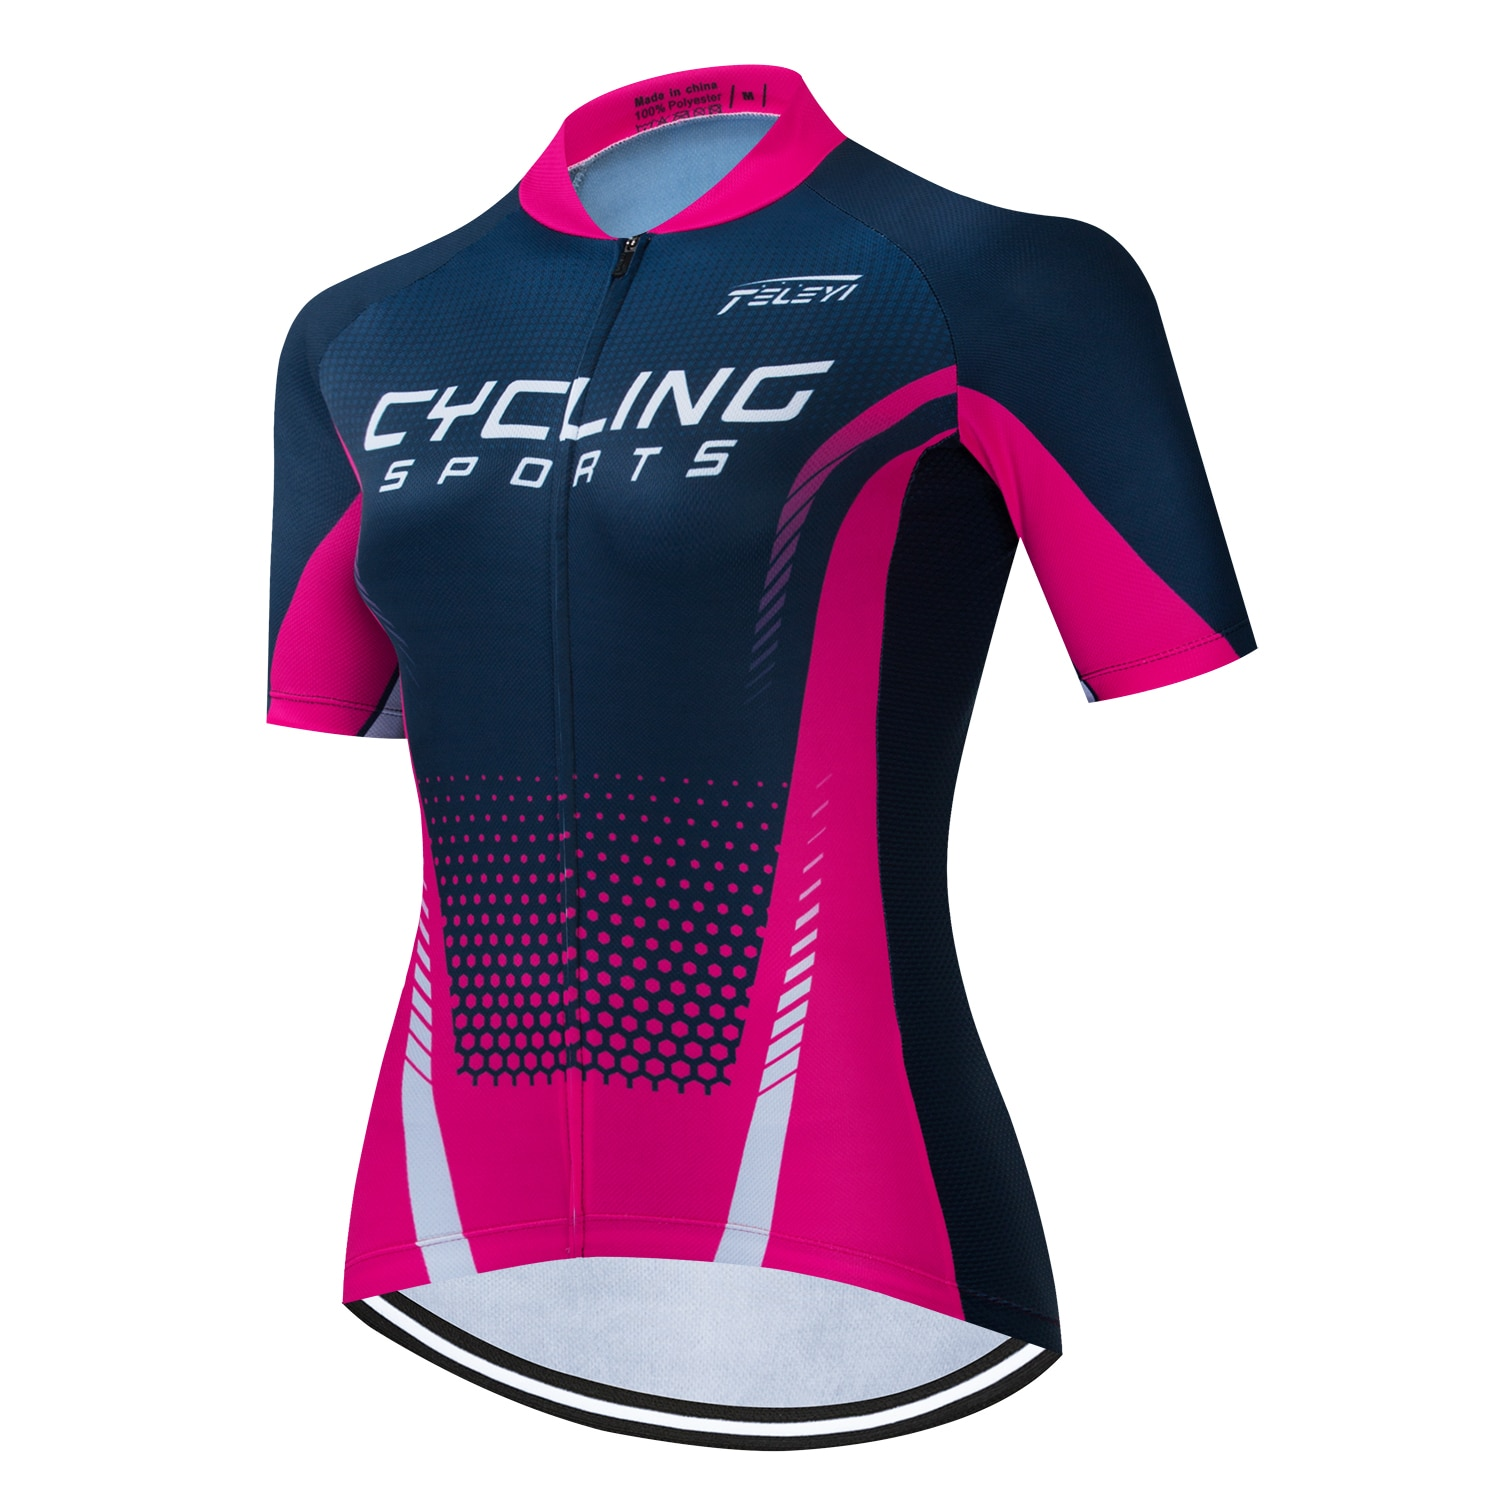 New Team Cycling Jersey Women Summer Short Sleeve MTB Bike Jersey Maillot Ciclismo Outdoor Racing Sport Bicycle Shirt